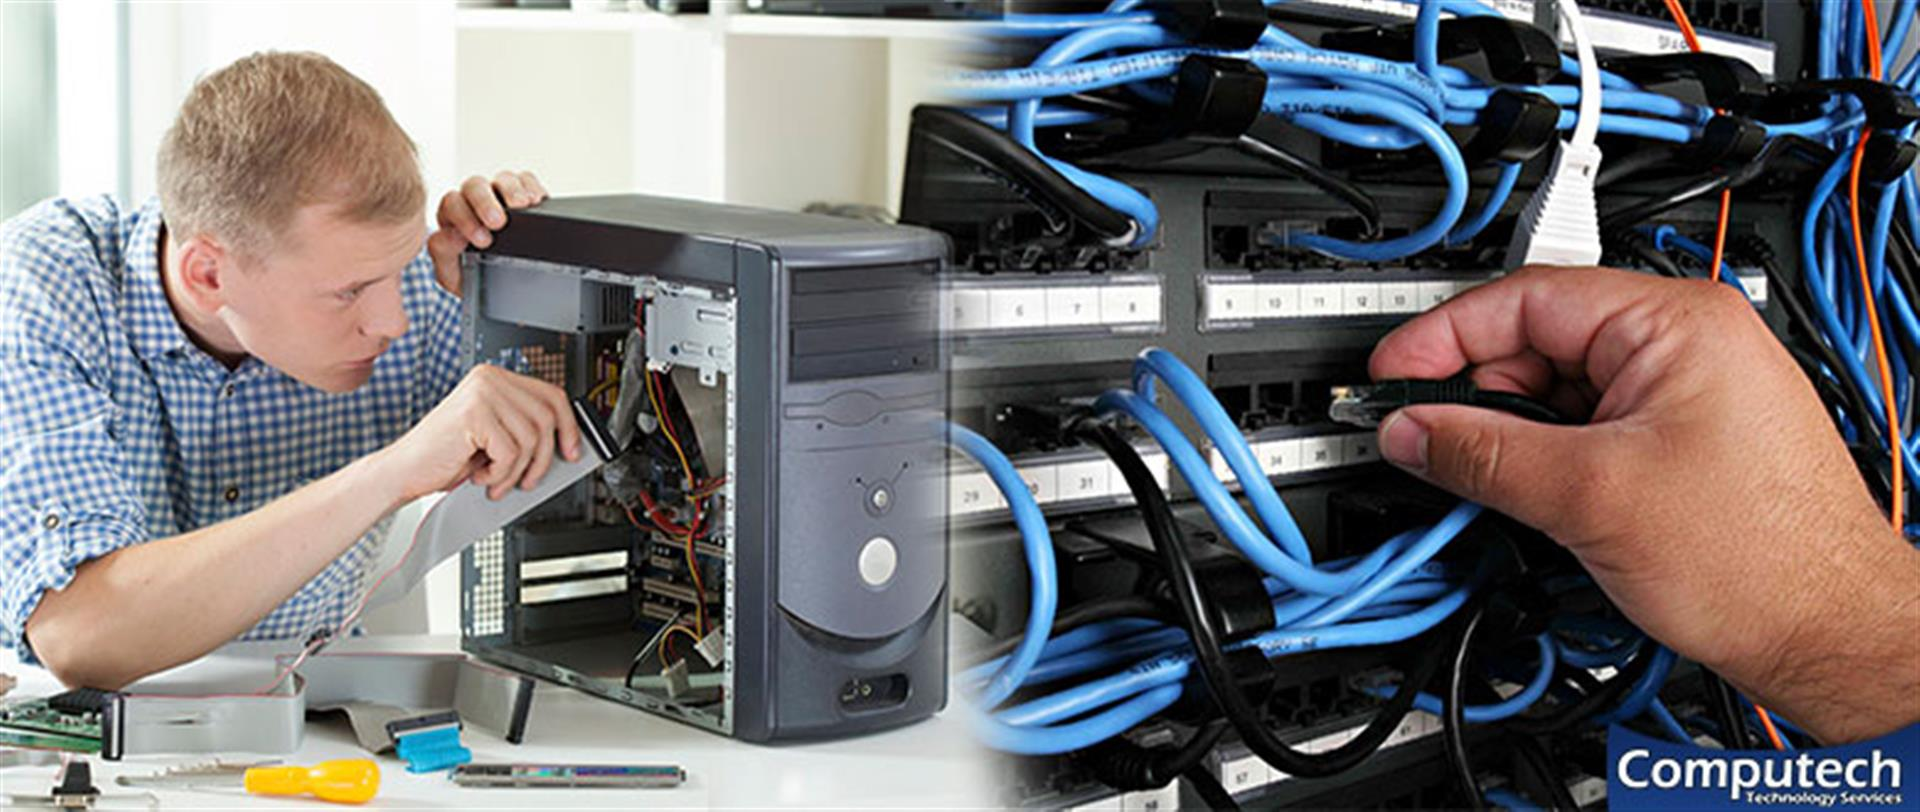 Cross Plains Tennessee On Site Computer PC and Printer Repairs, Network, Voice & Data Cabling Services